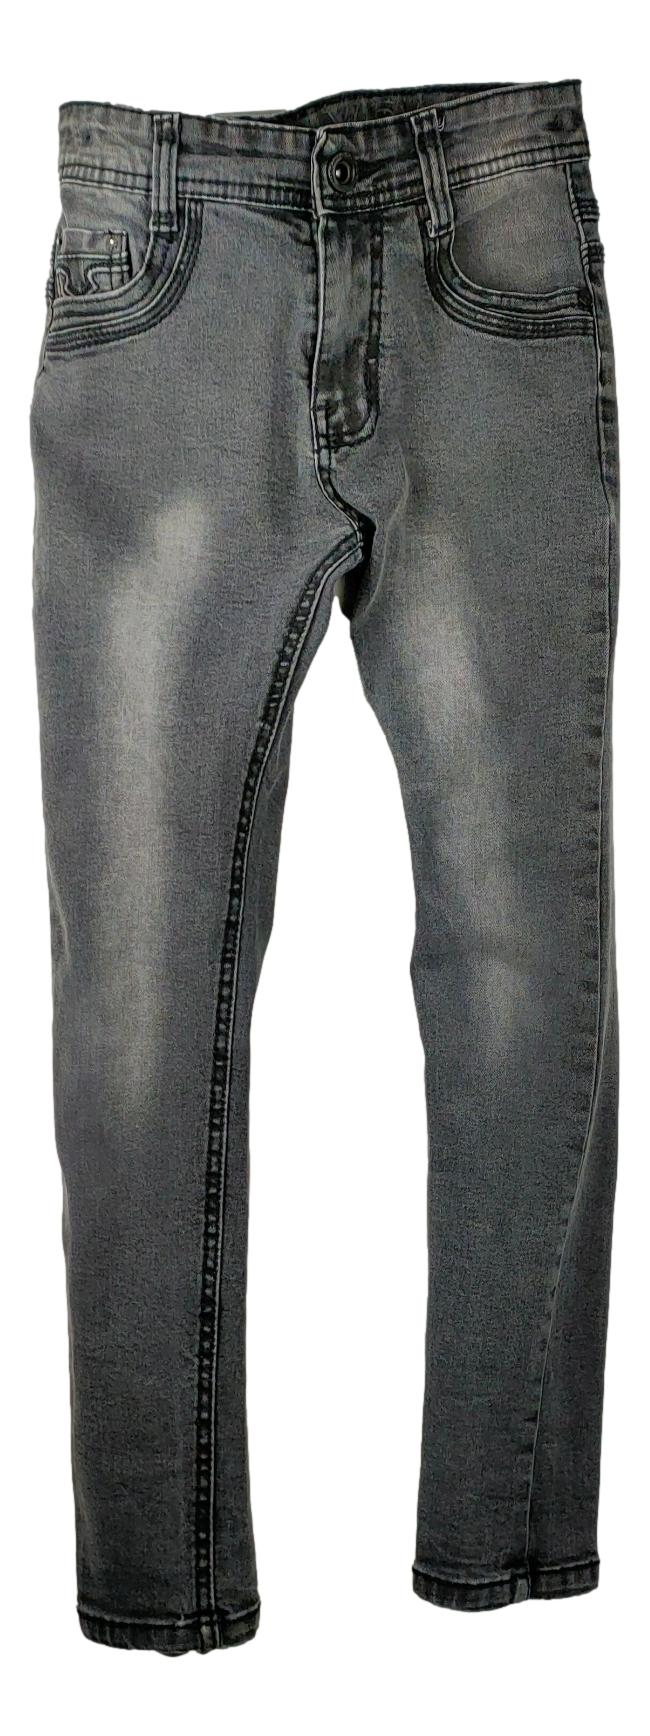 Jean OX King Denim - Taille 9-10 ans